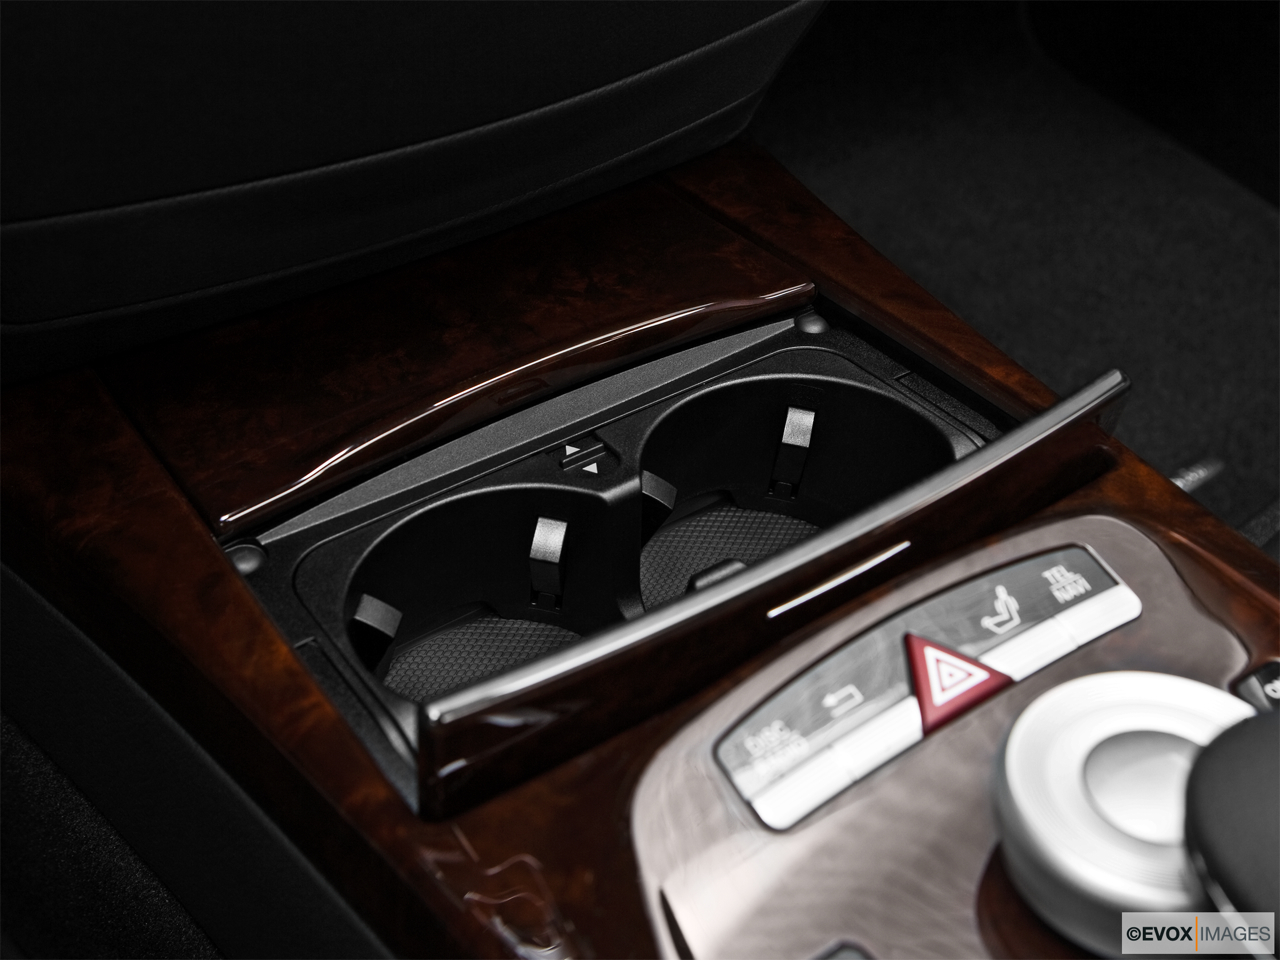 2010 Mercedes-Benz S-Class Hybrid S400 Cup holders.